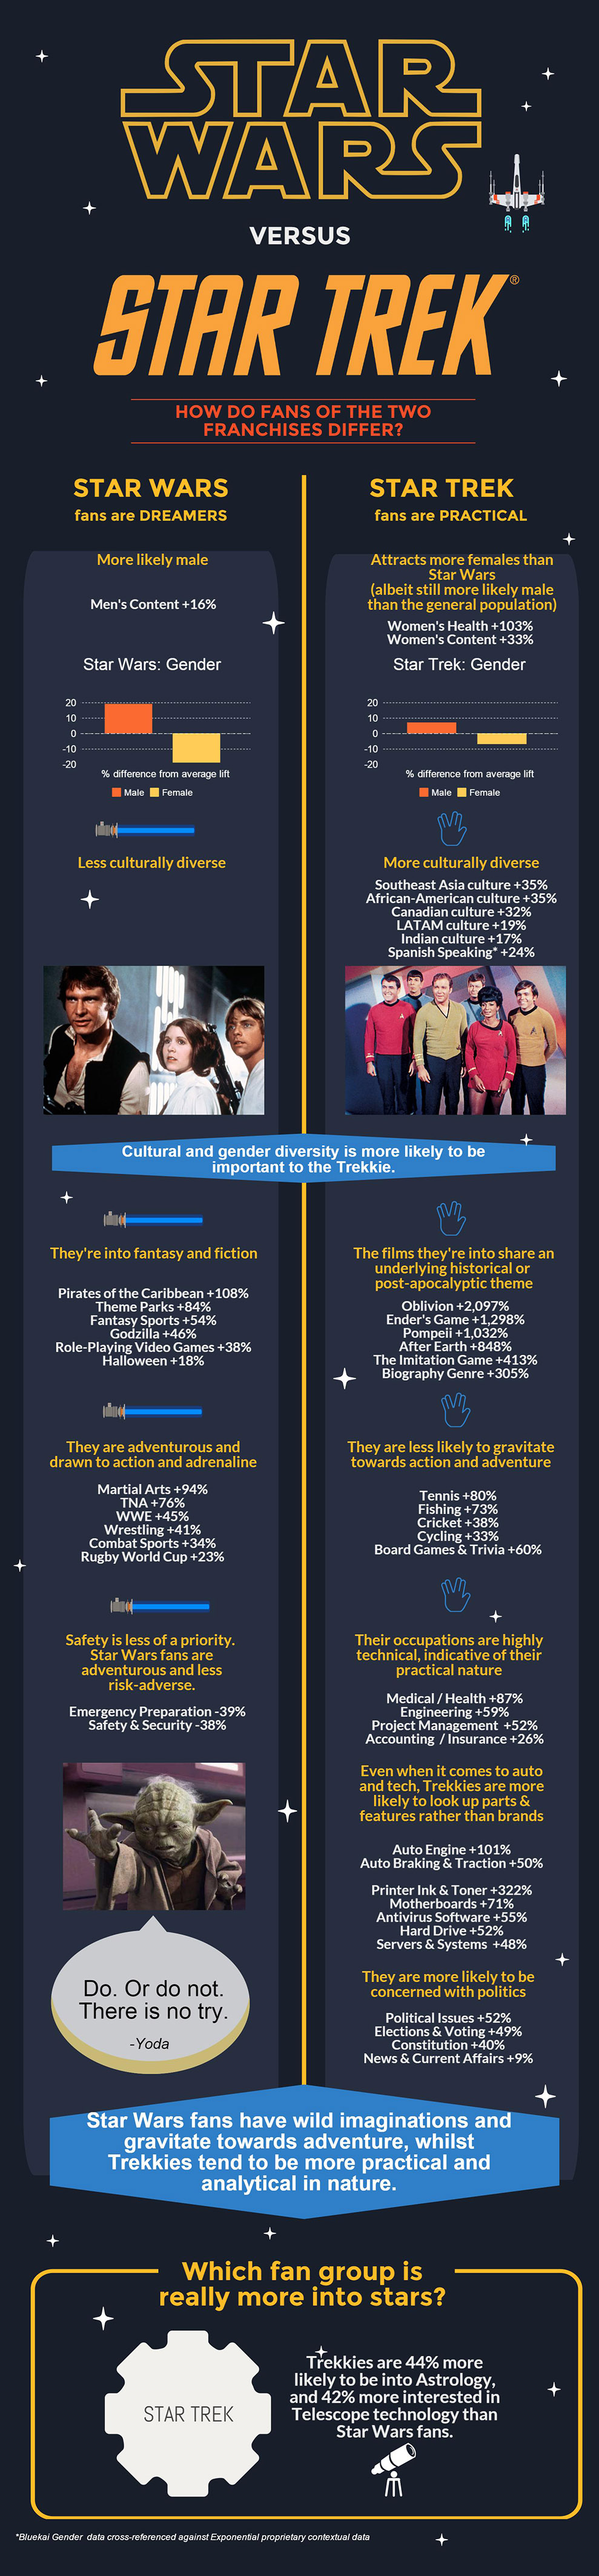 star wars fans vs star trek fans analysis of their online star wars vs star trek